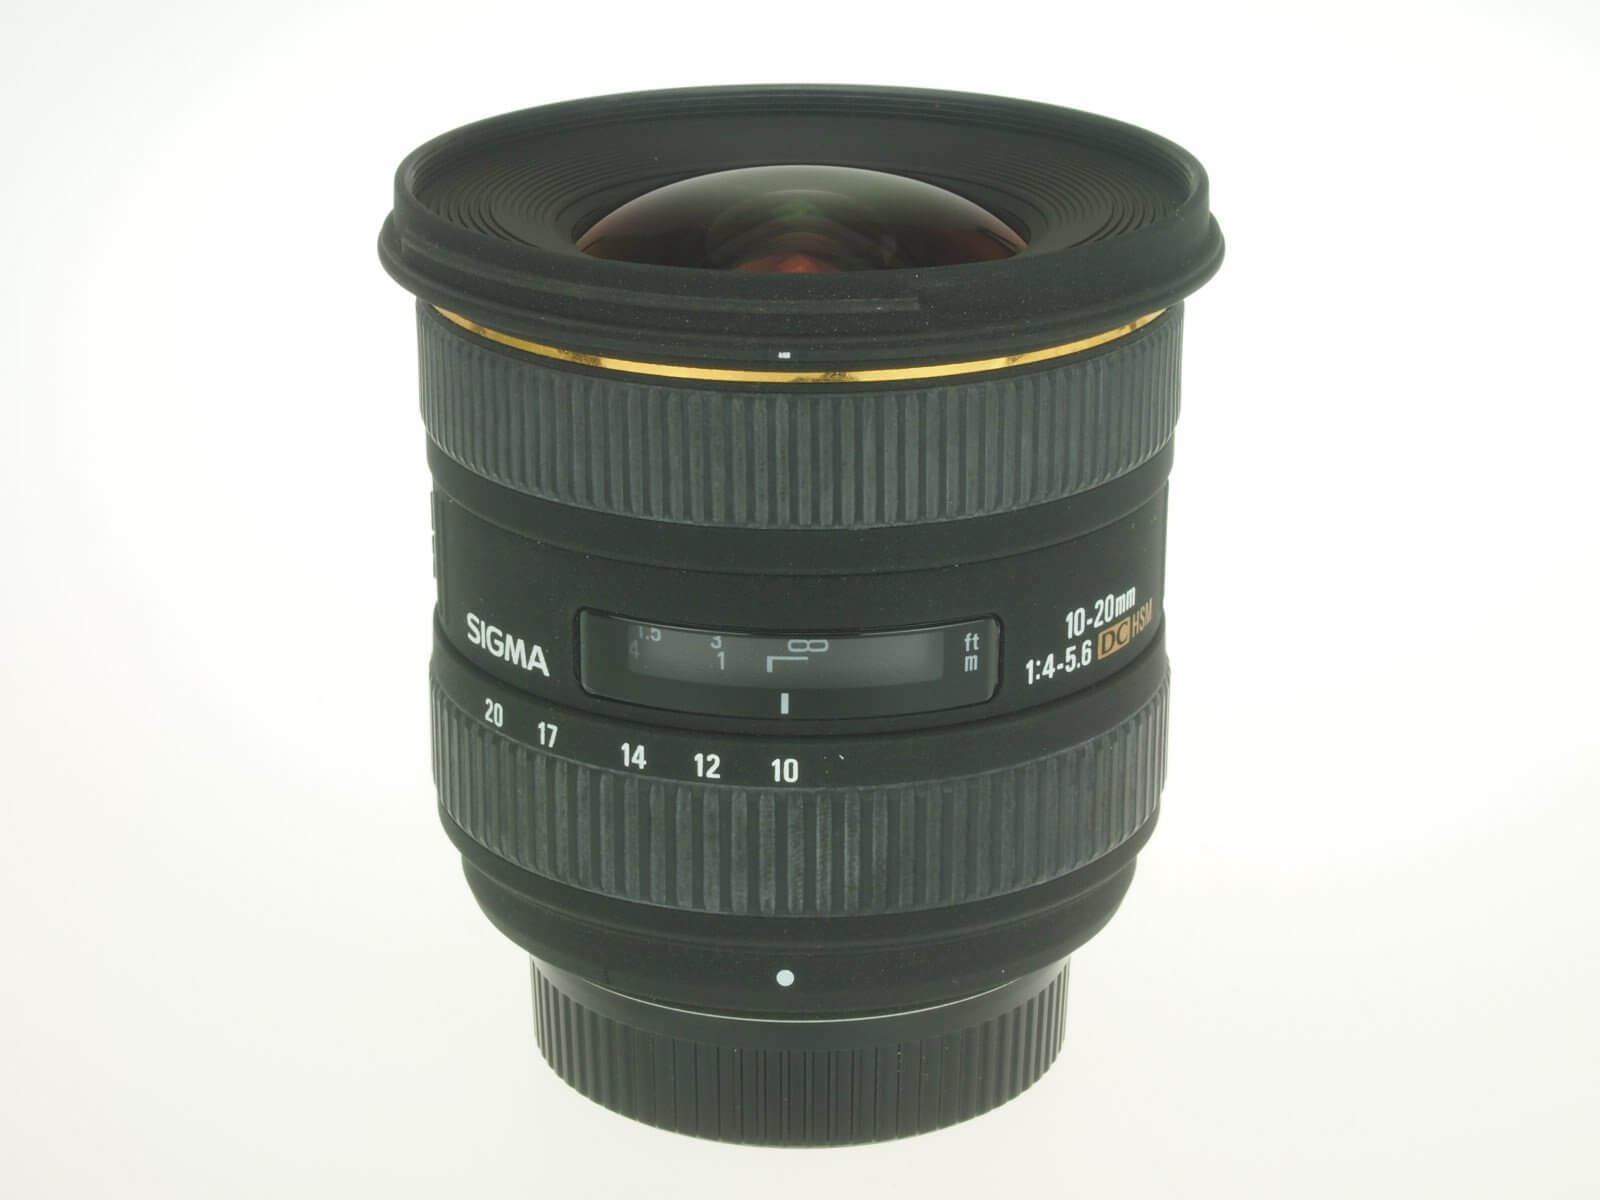 Sigma 10-20mm f4-5.6 DC HSM lens, Nikon mount, almost mint!